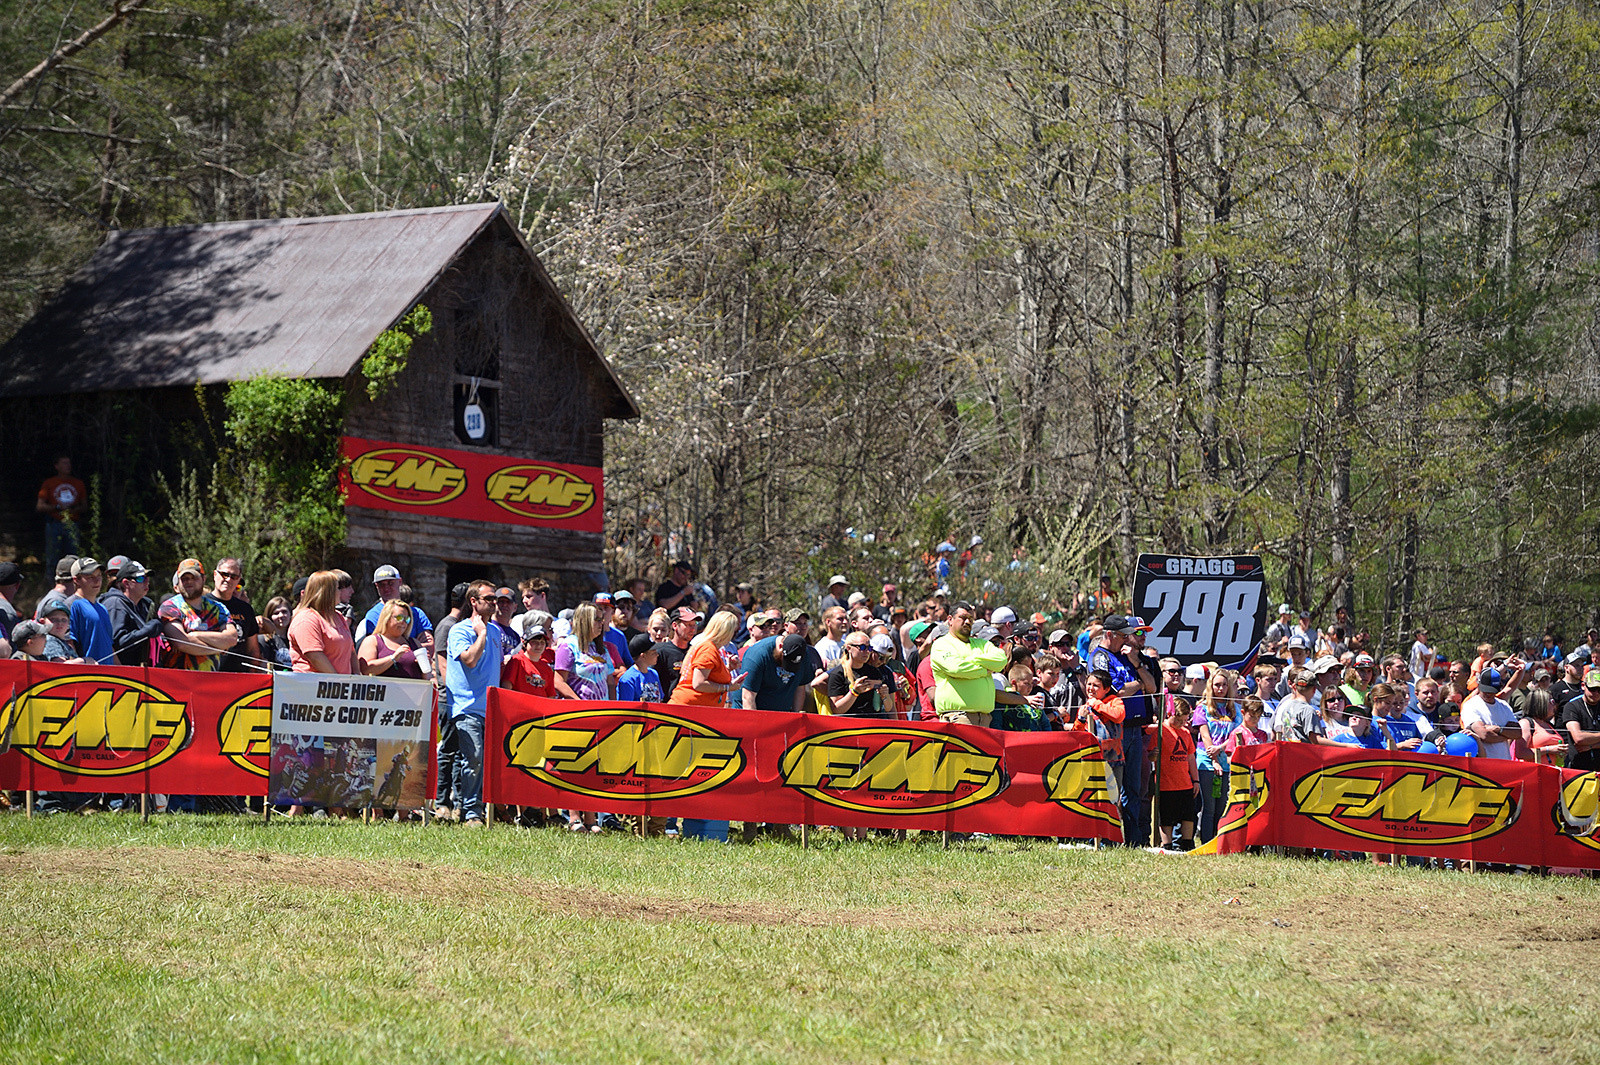 Tribute to Chris and Cody Gragg - Steele Creek GNCC - Motocross Pictures - Vital MX